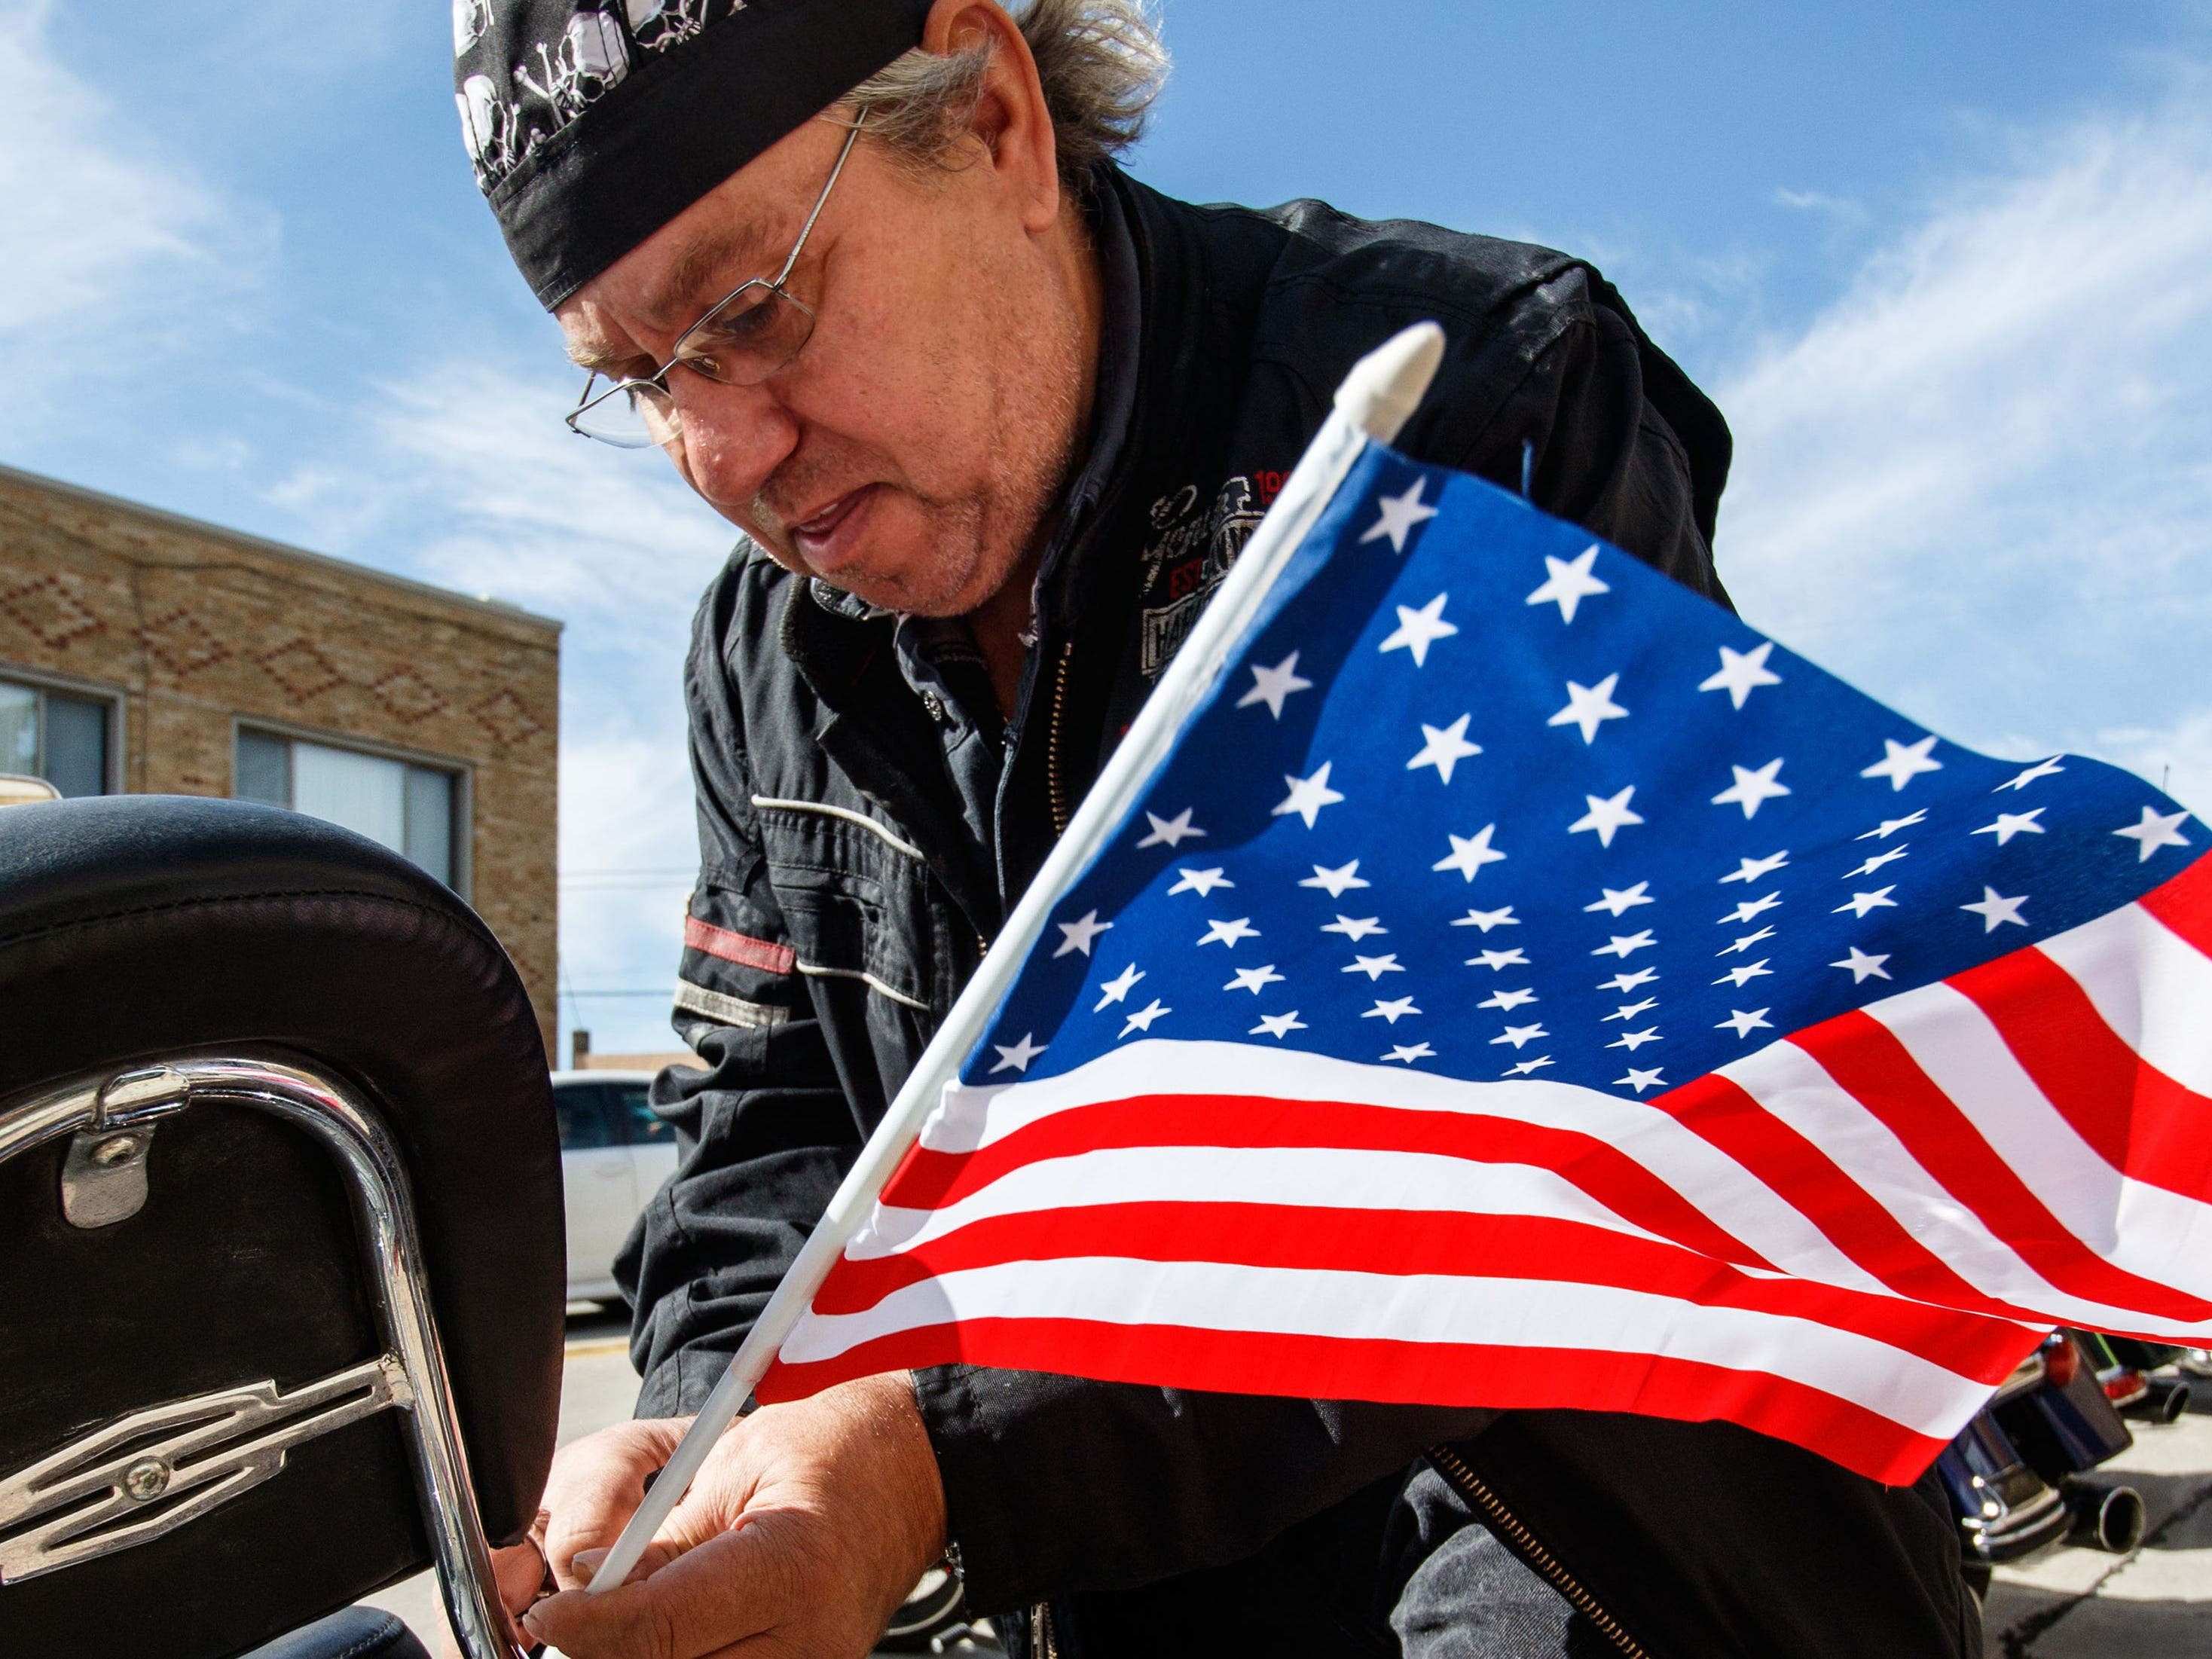 """Karl Emshoff of Wauwatosa attaches a flag to his motorcycle prior to the Angels of the Road """"Ride for Veterans"""" inaugural benefit ride hosted by the Henrizi-Schneider American Legion Post 382 in Menomonee Falls on Sunday, Sept. 9, 2018. Proceeds from the ride will benefit the Milwaukee Homeless Veterans Initiative."""